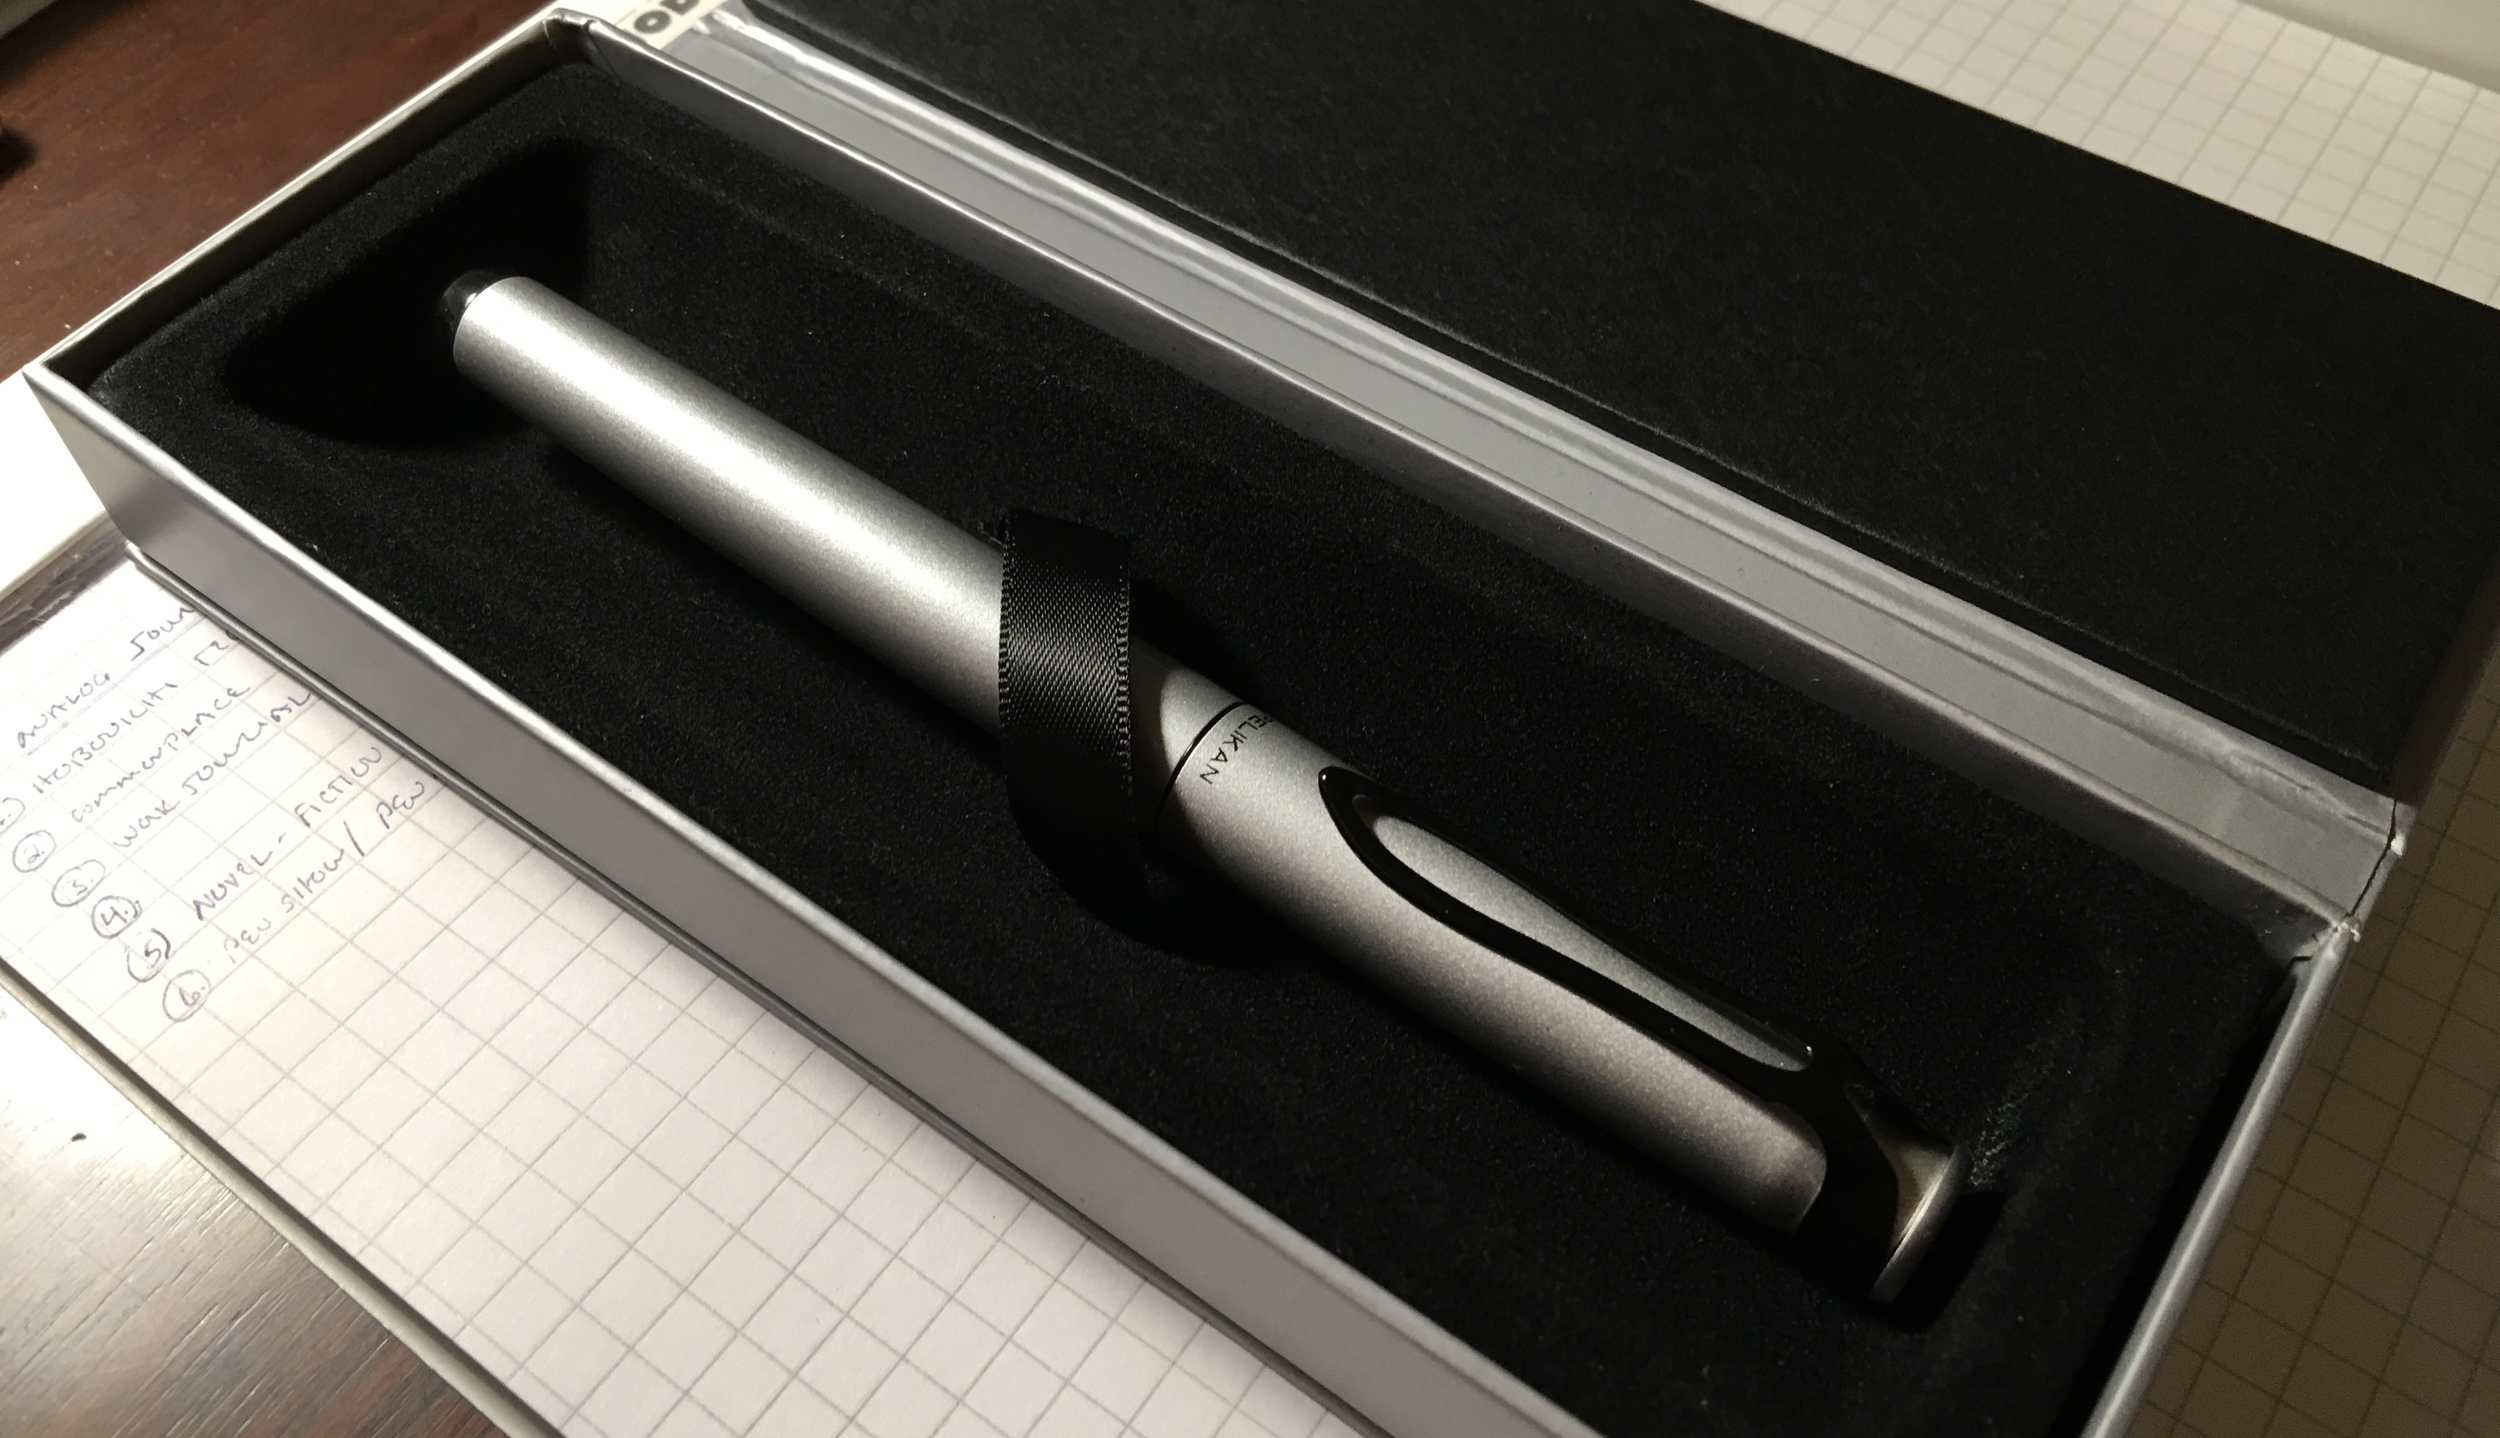 The packaging on the Stola is appropriate for the pen's price point:  simple and understated, yet still sophisticated.